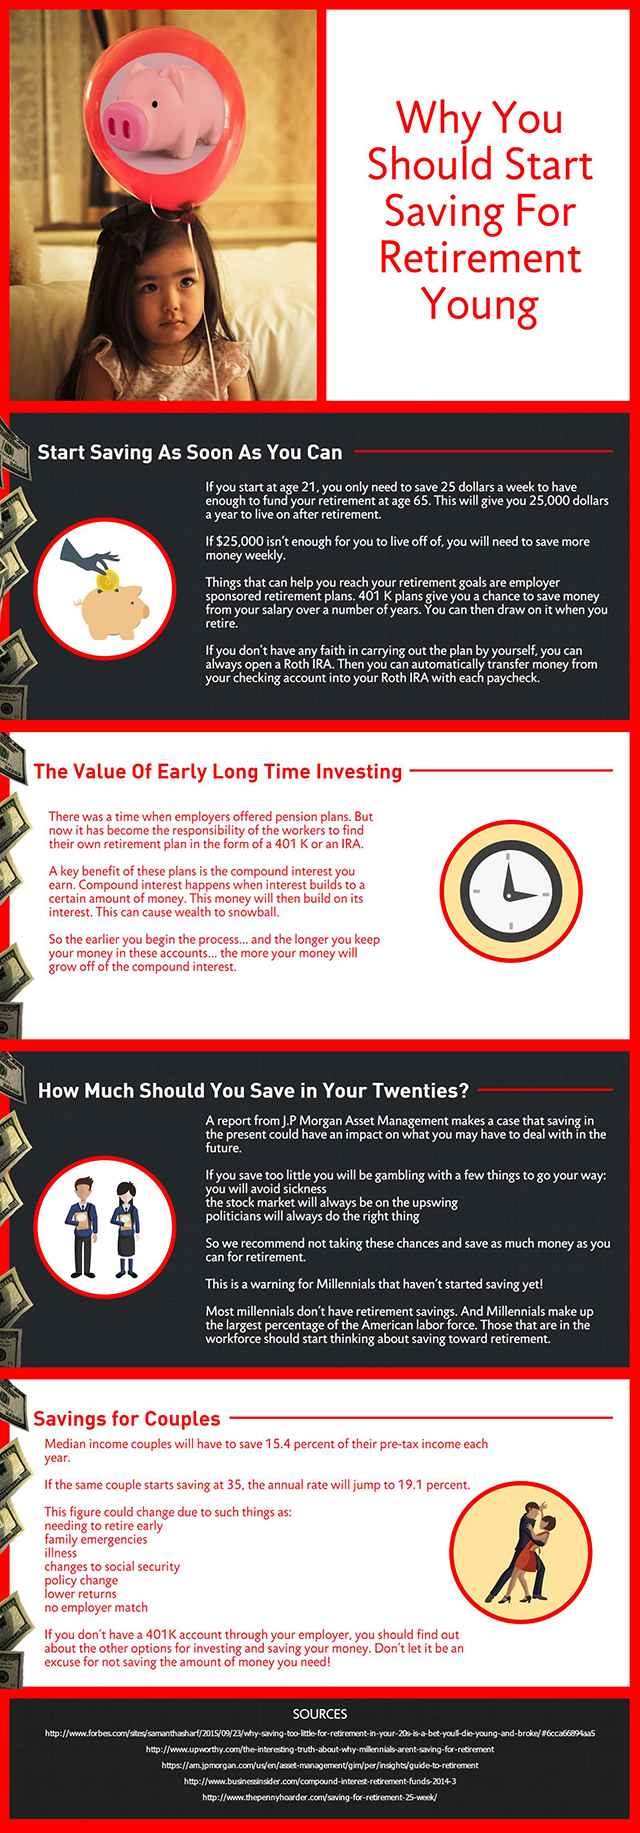 Why You Should Start Saving For Retirement Young - Infographic